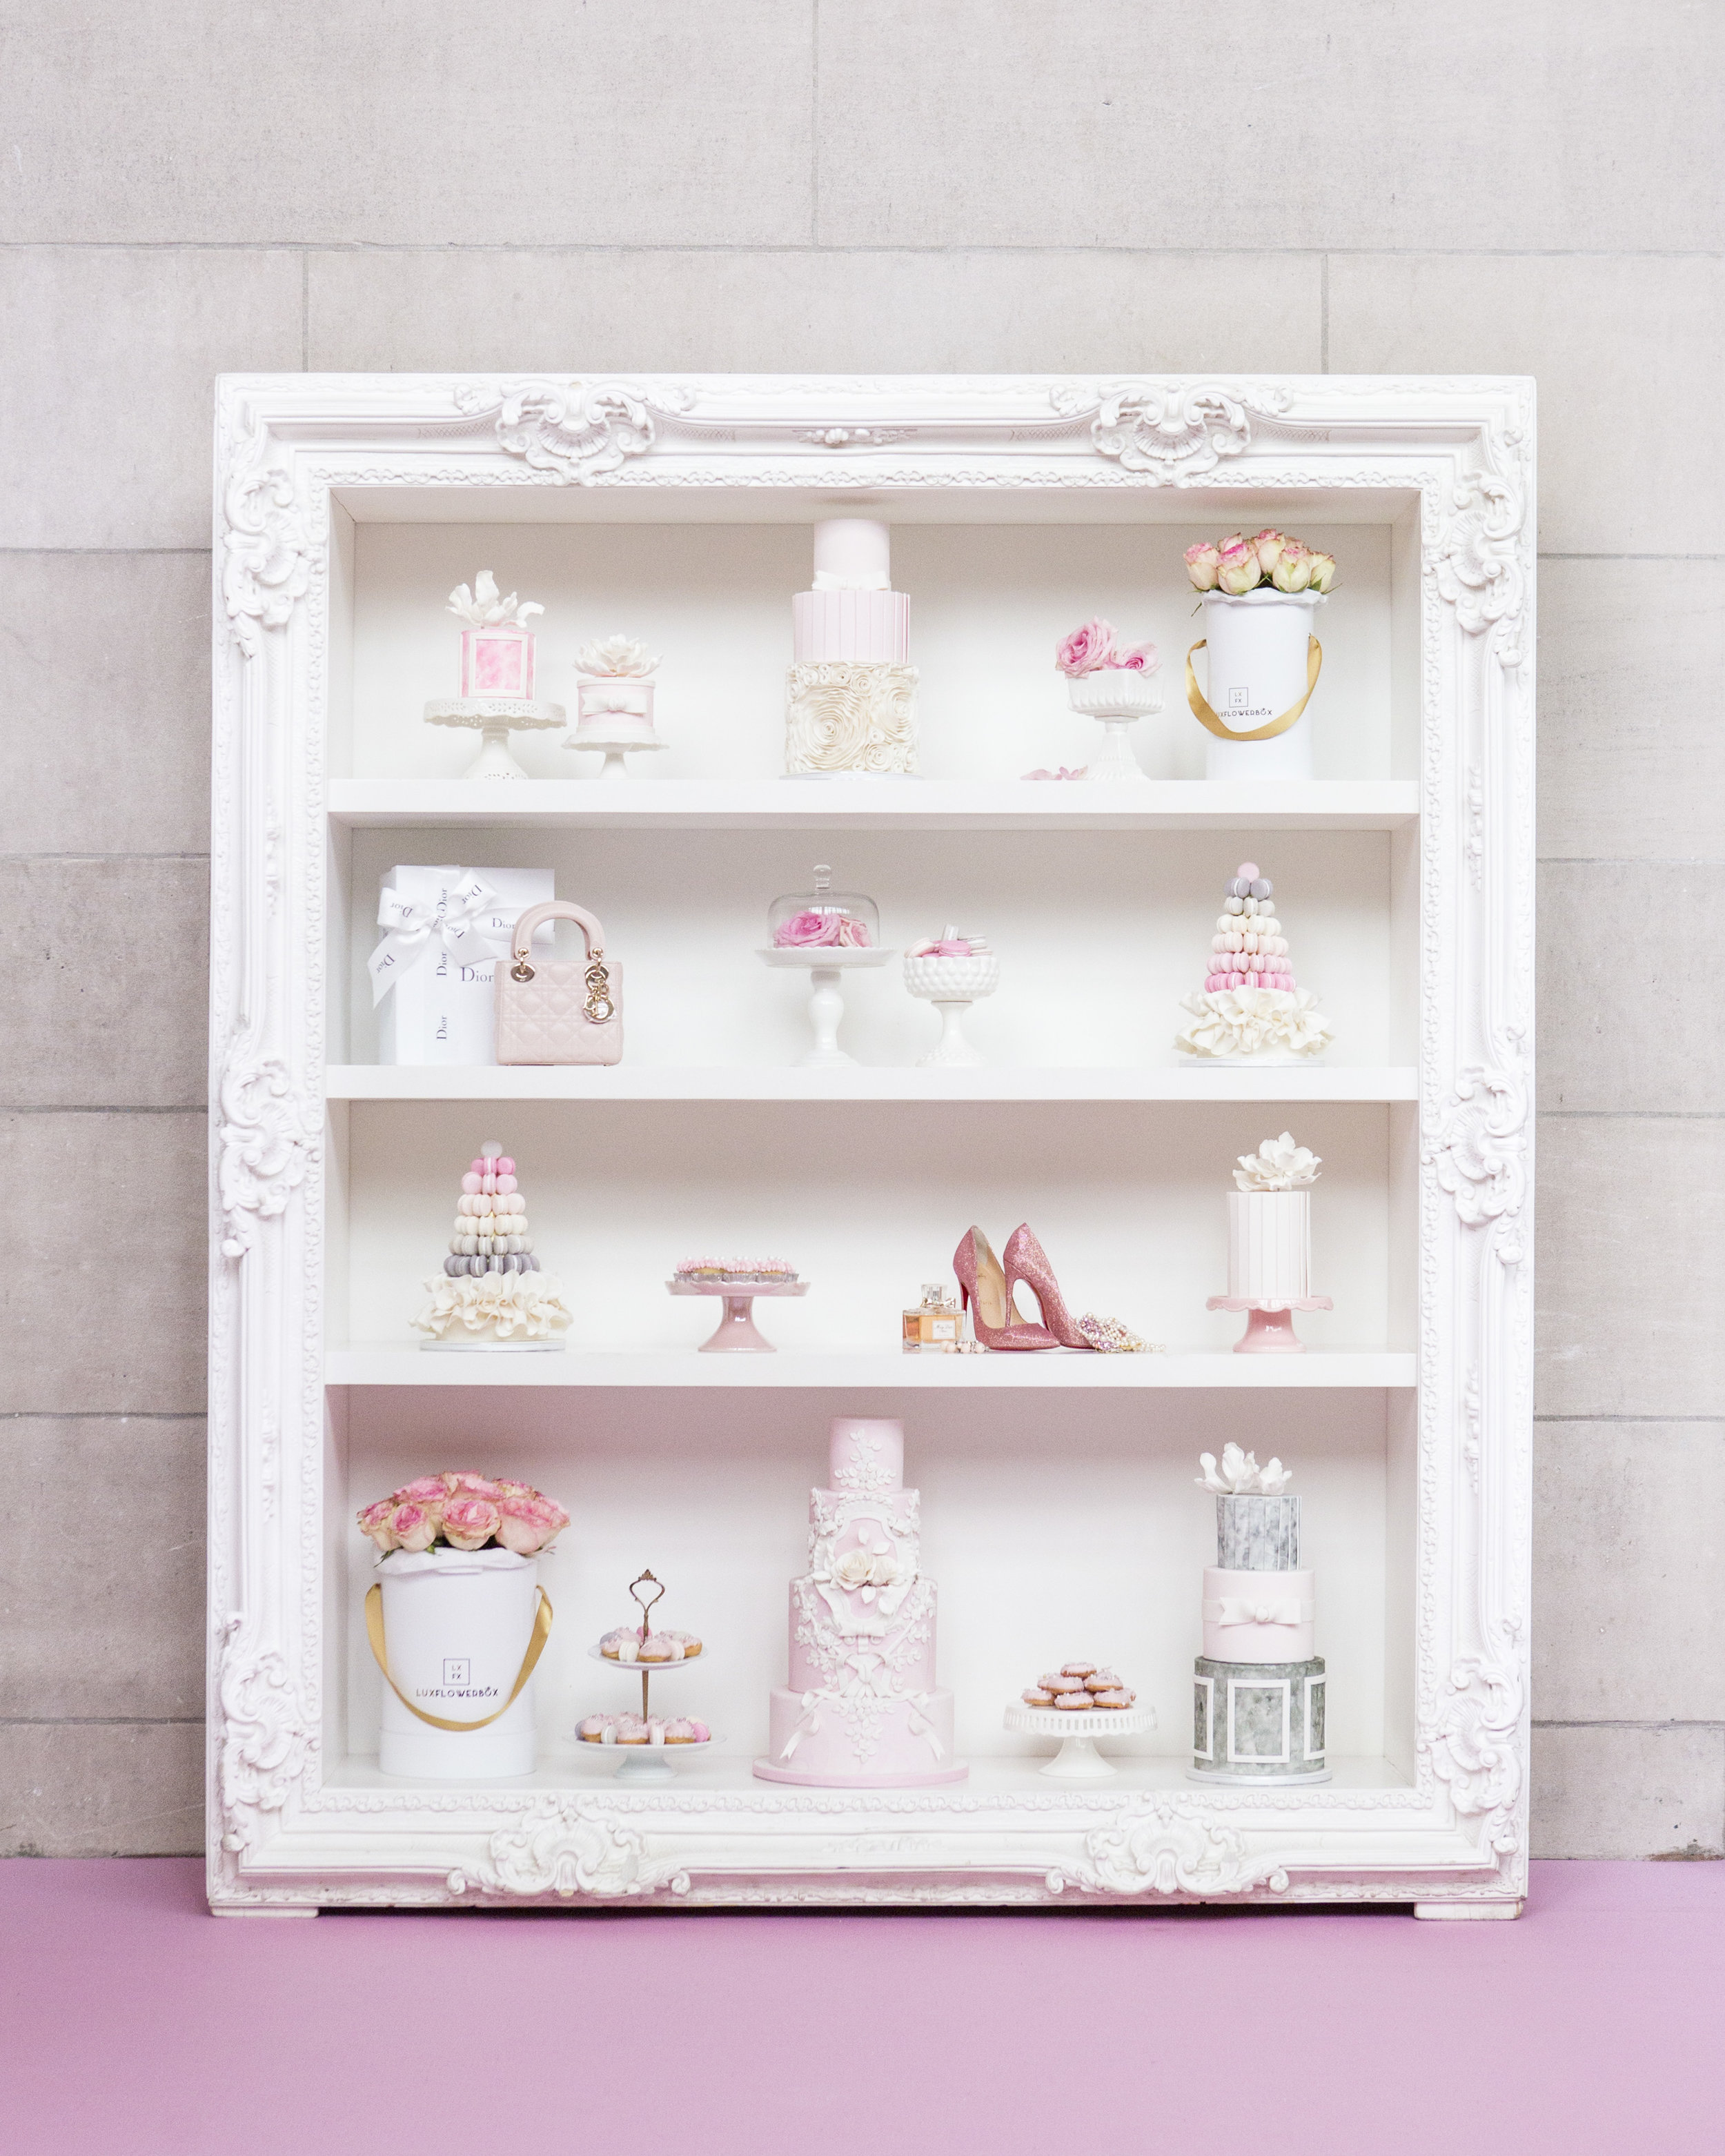 August in Bloom - Shelving unit full of sweets - Dior Darling